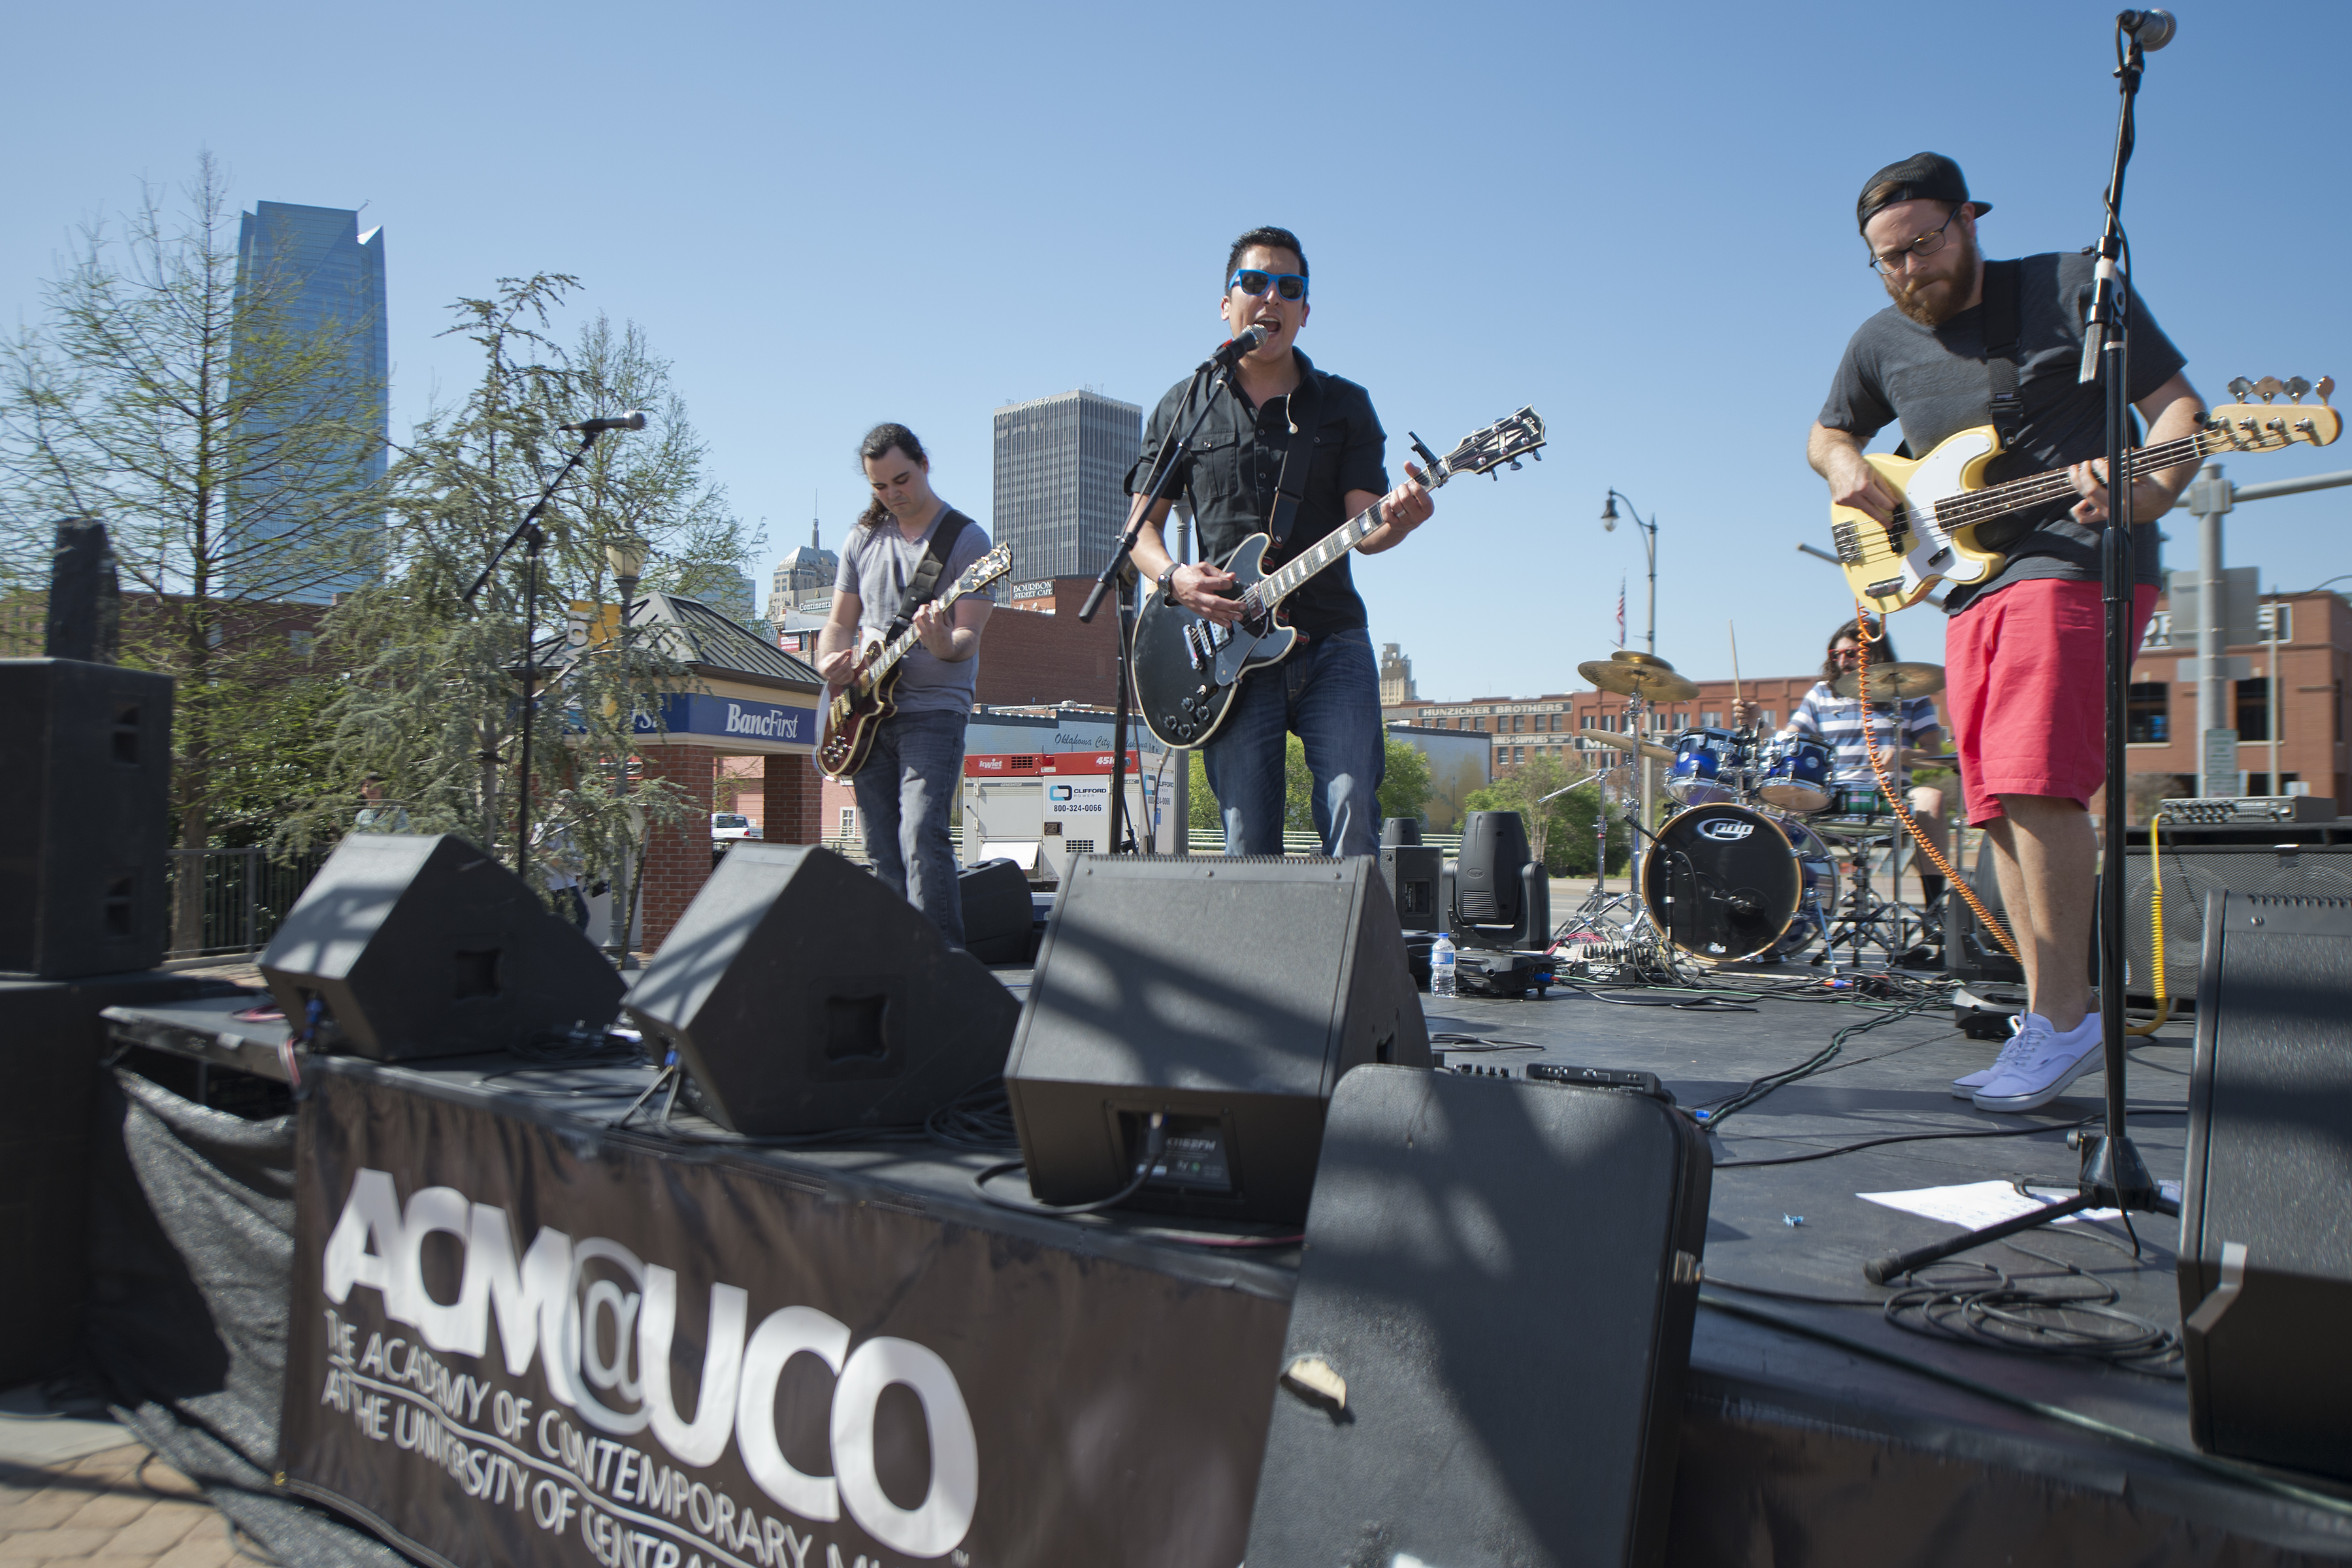 ACM Metro Music Fest Hits Bricktown This Weekend